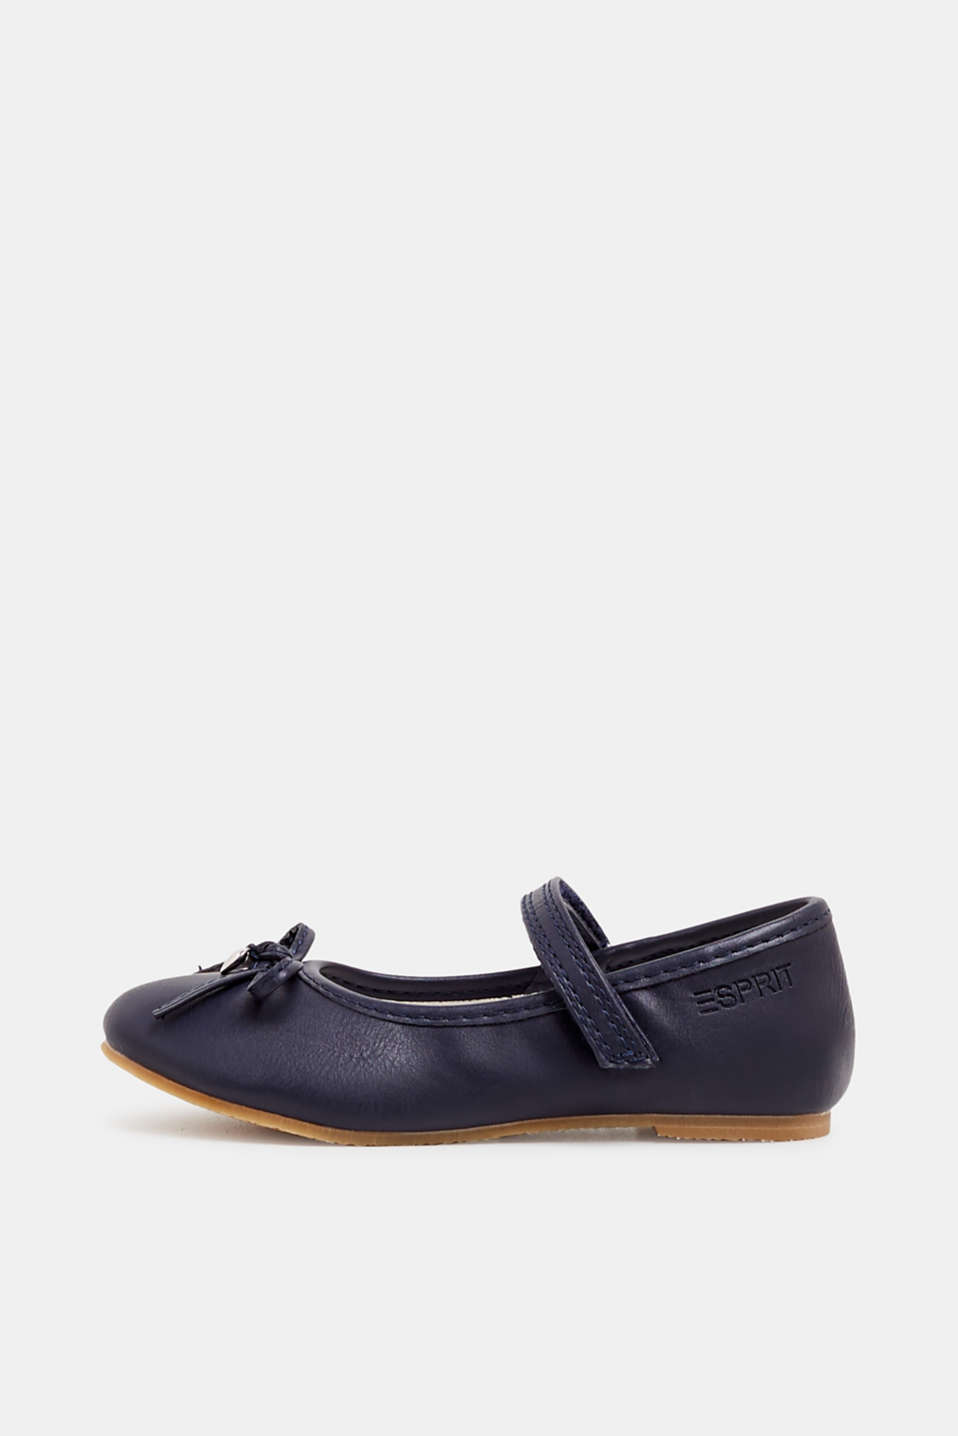 Ballerinas with Velcro straps, in faux leather, NAVY, detail image number 0